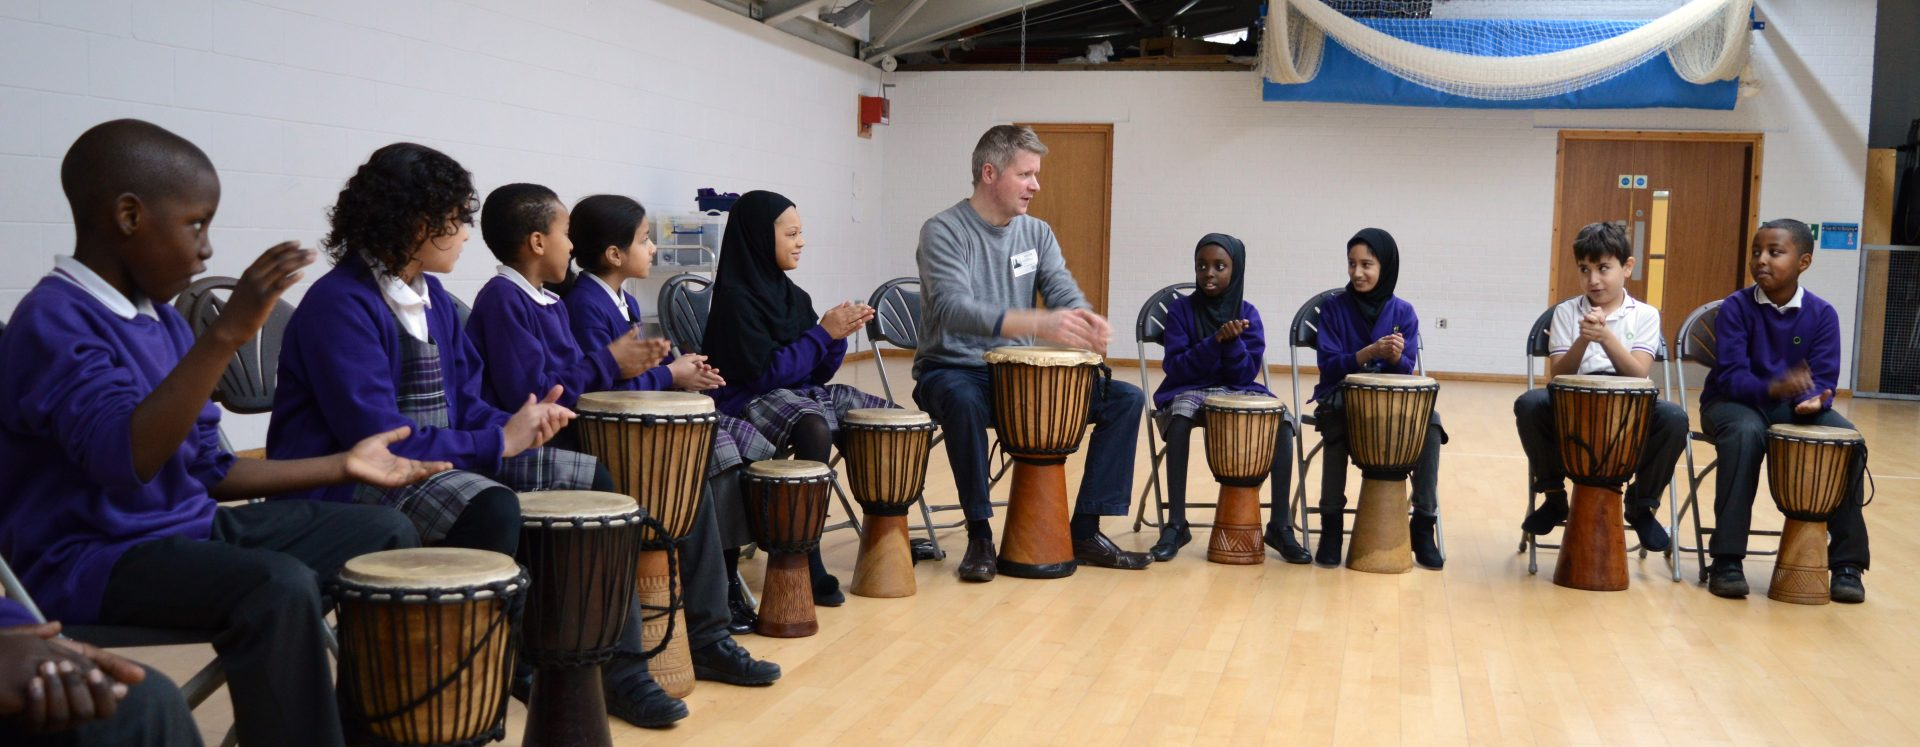 Sounds of Africa come to school with drumming workshop